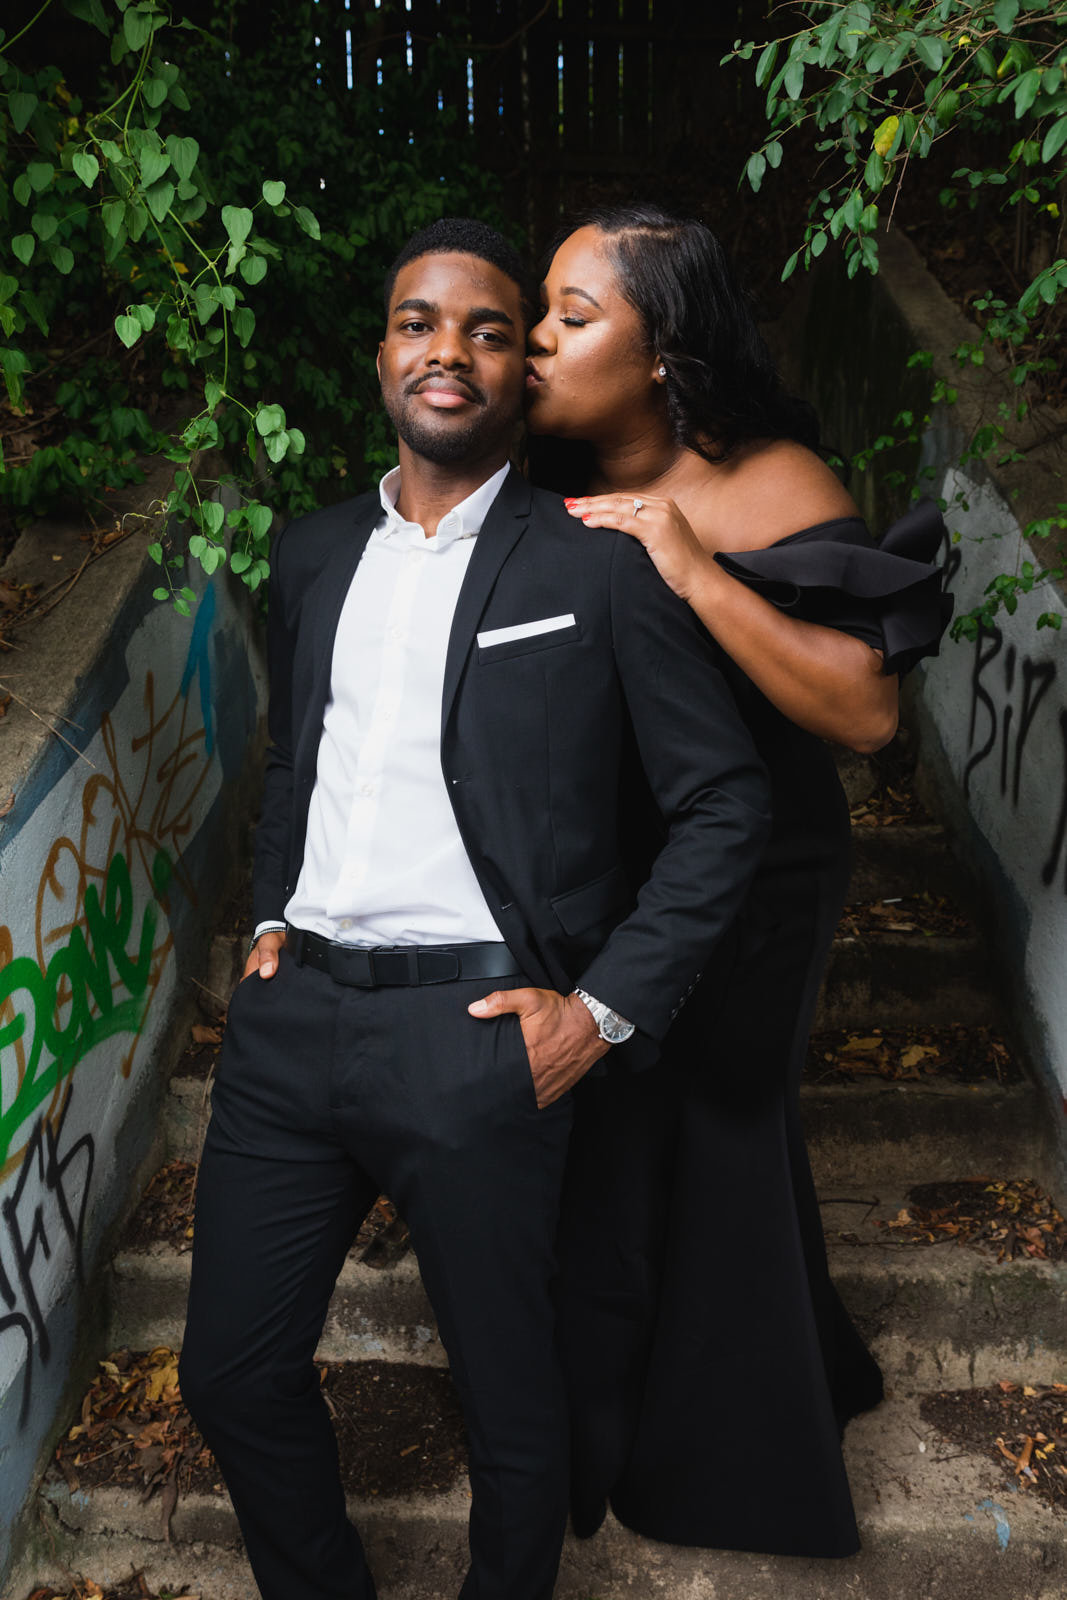 couple kisses on urban stairs for engagement session in Atlanta Old Fourth Ward